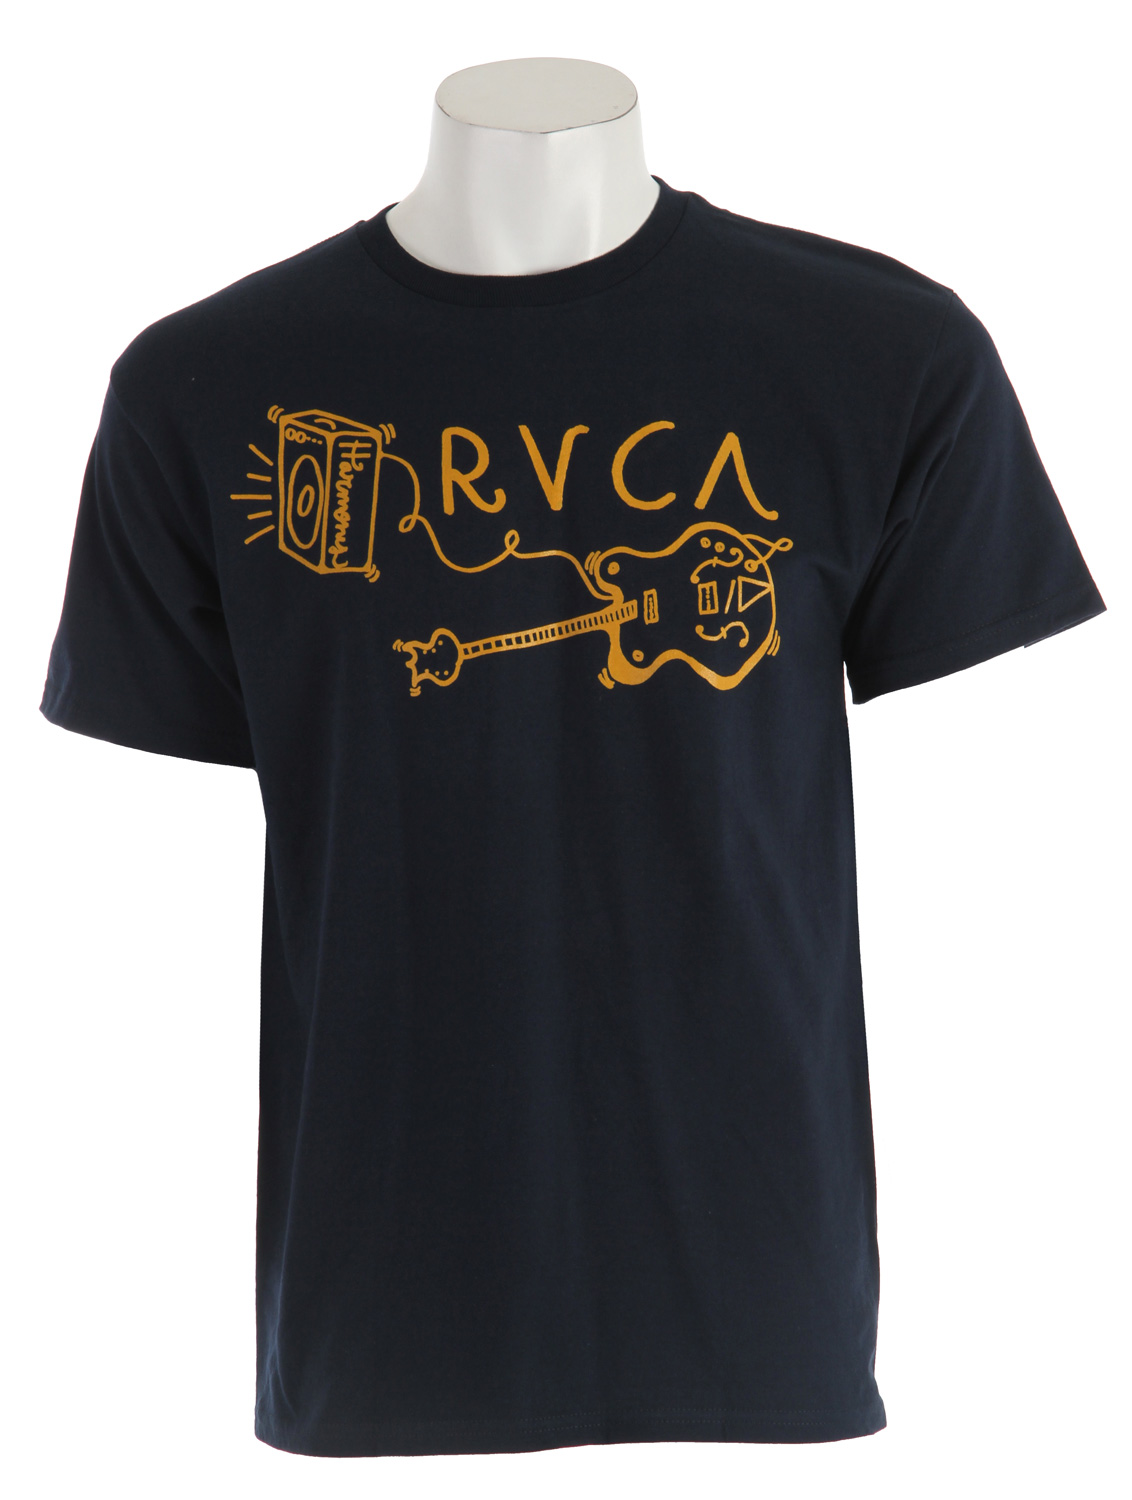 Guns and Military Key Features of The RVCA Harmony Guitar T-Shirt: Regular Fit Crew Neck Short Sleeve RVCA's industrial tee Heavier weight 100% ring spun cotton tee - $25.95